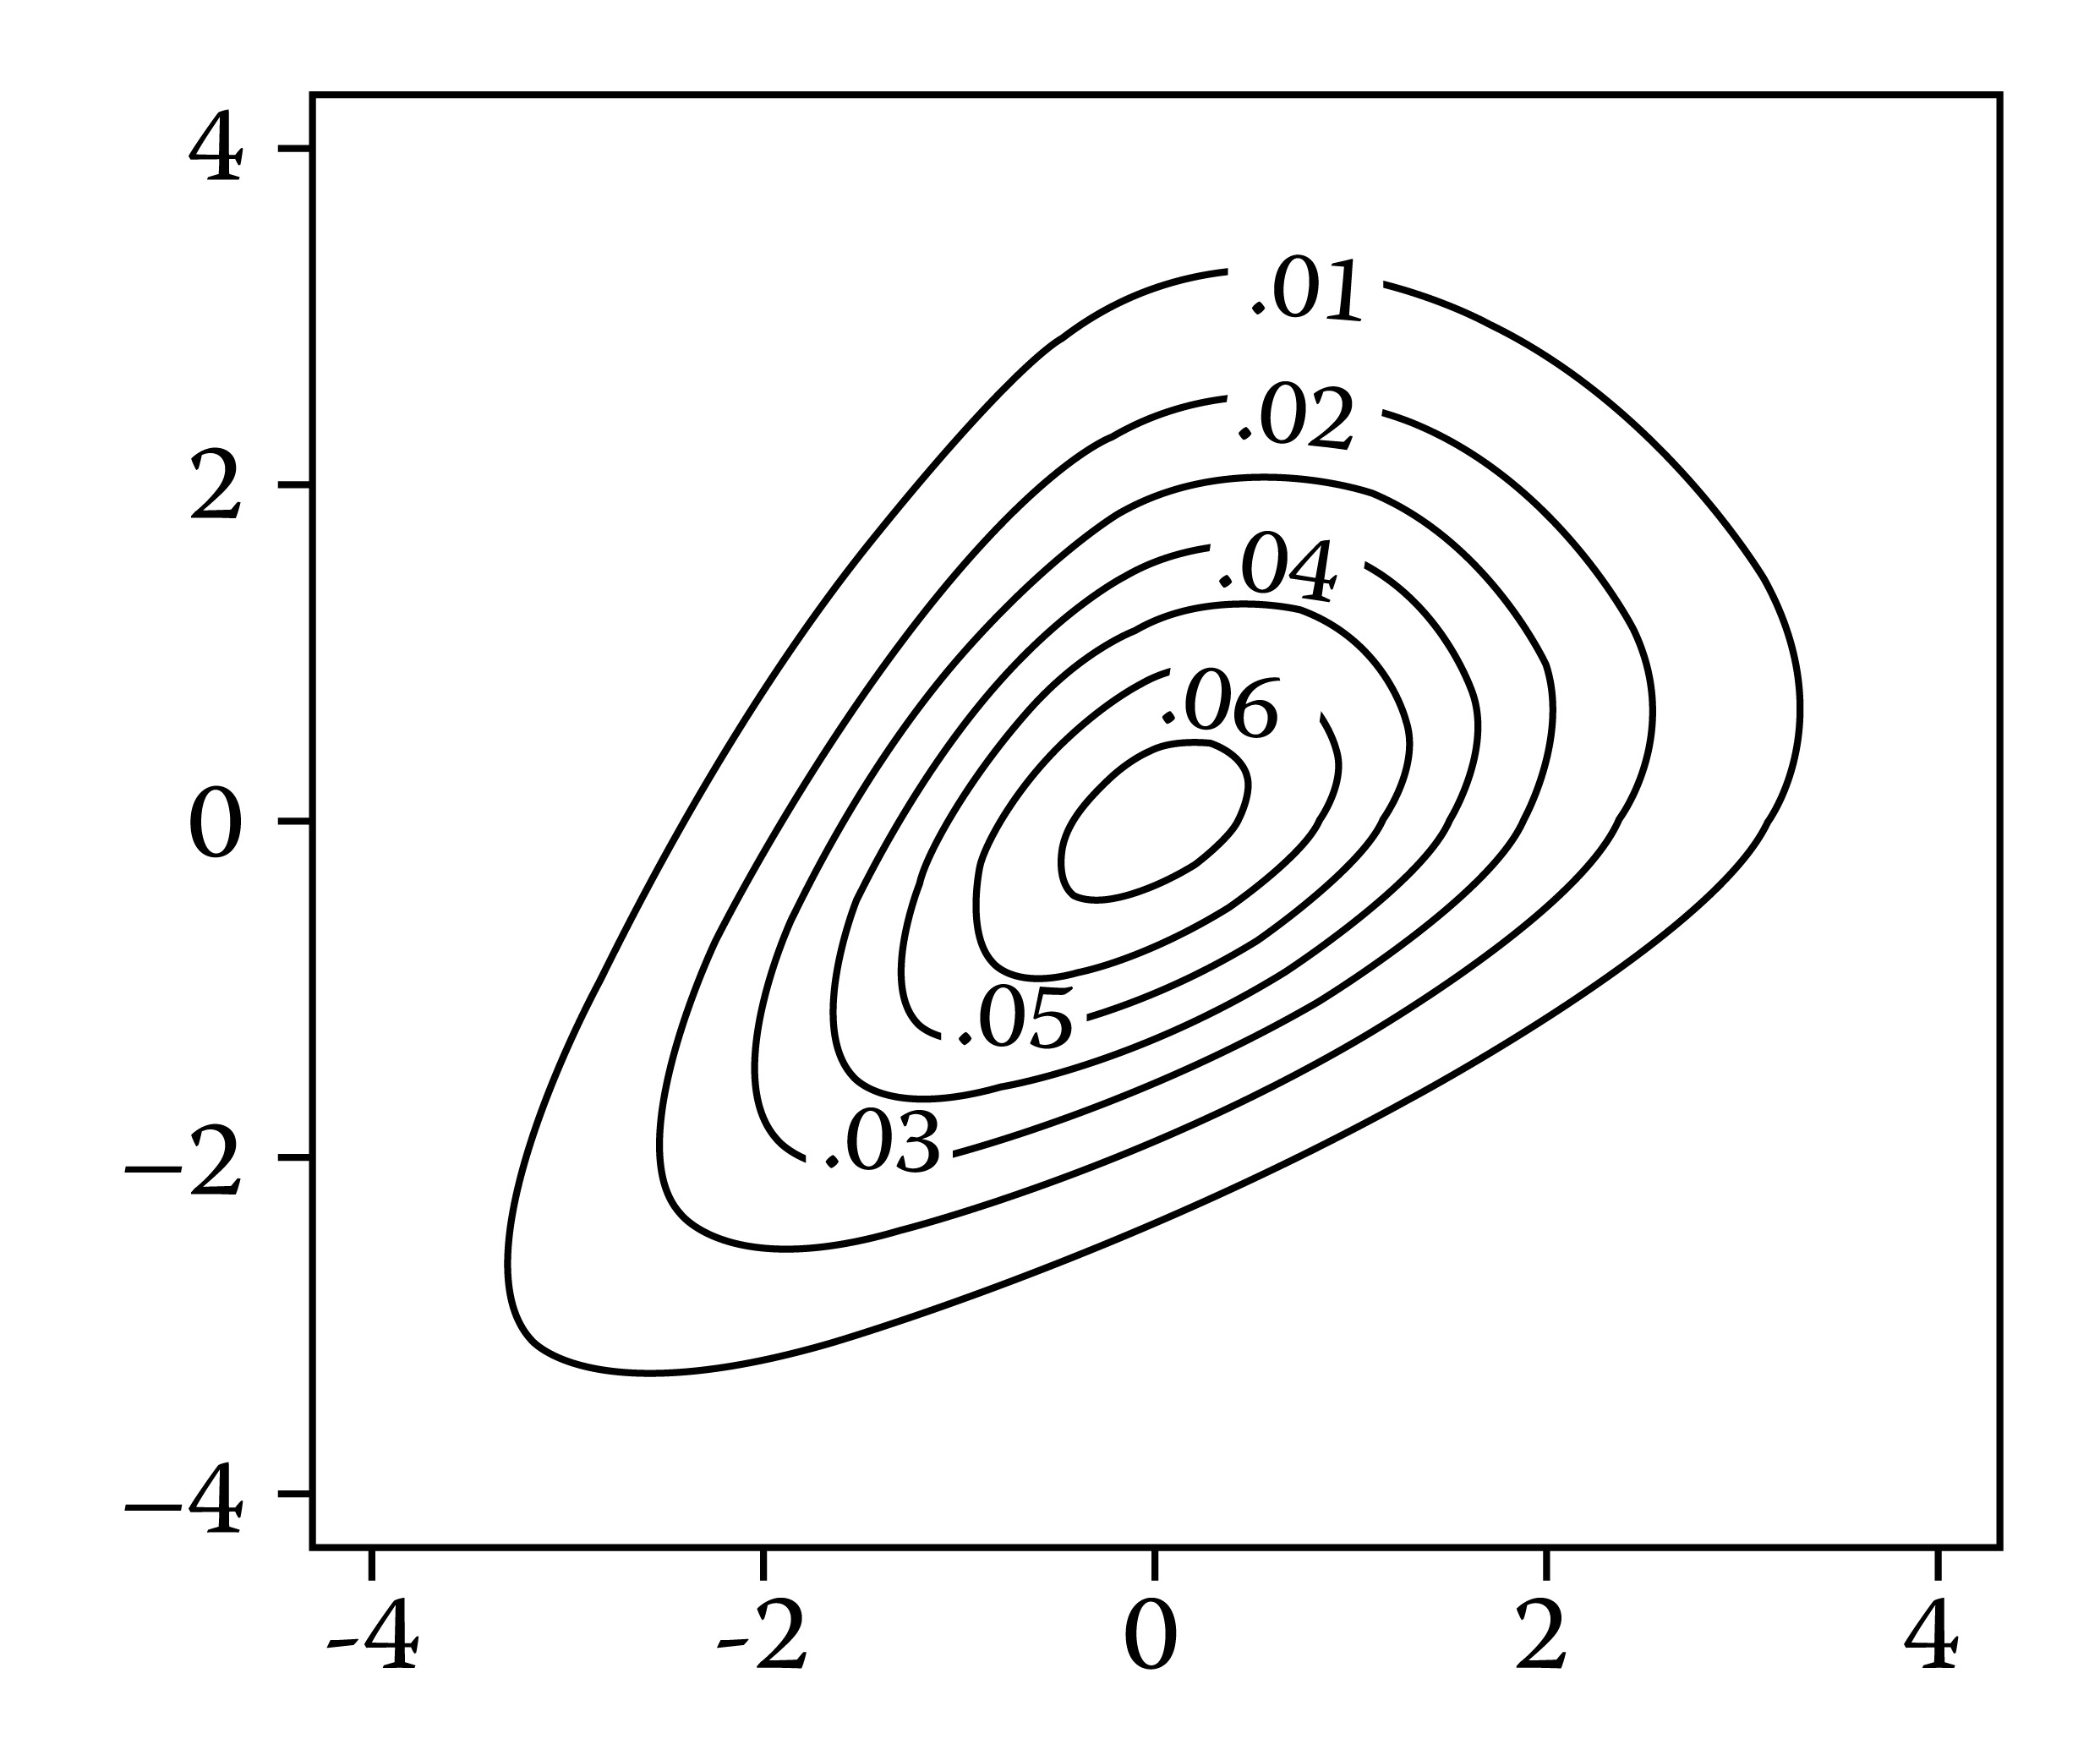 Contours of the bivariate logistic density. The horizontal and vertical axes are